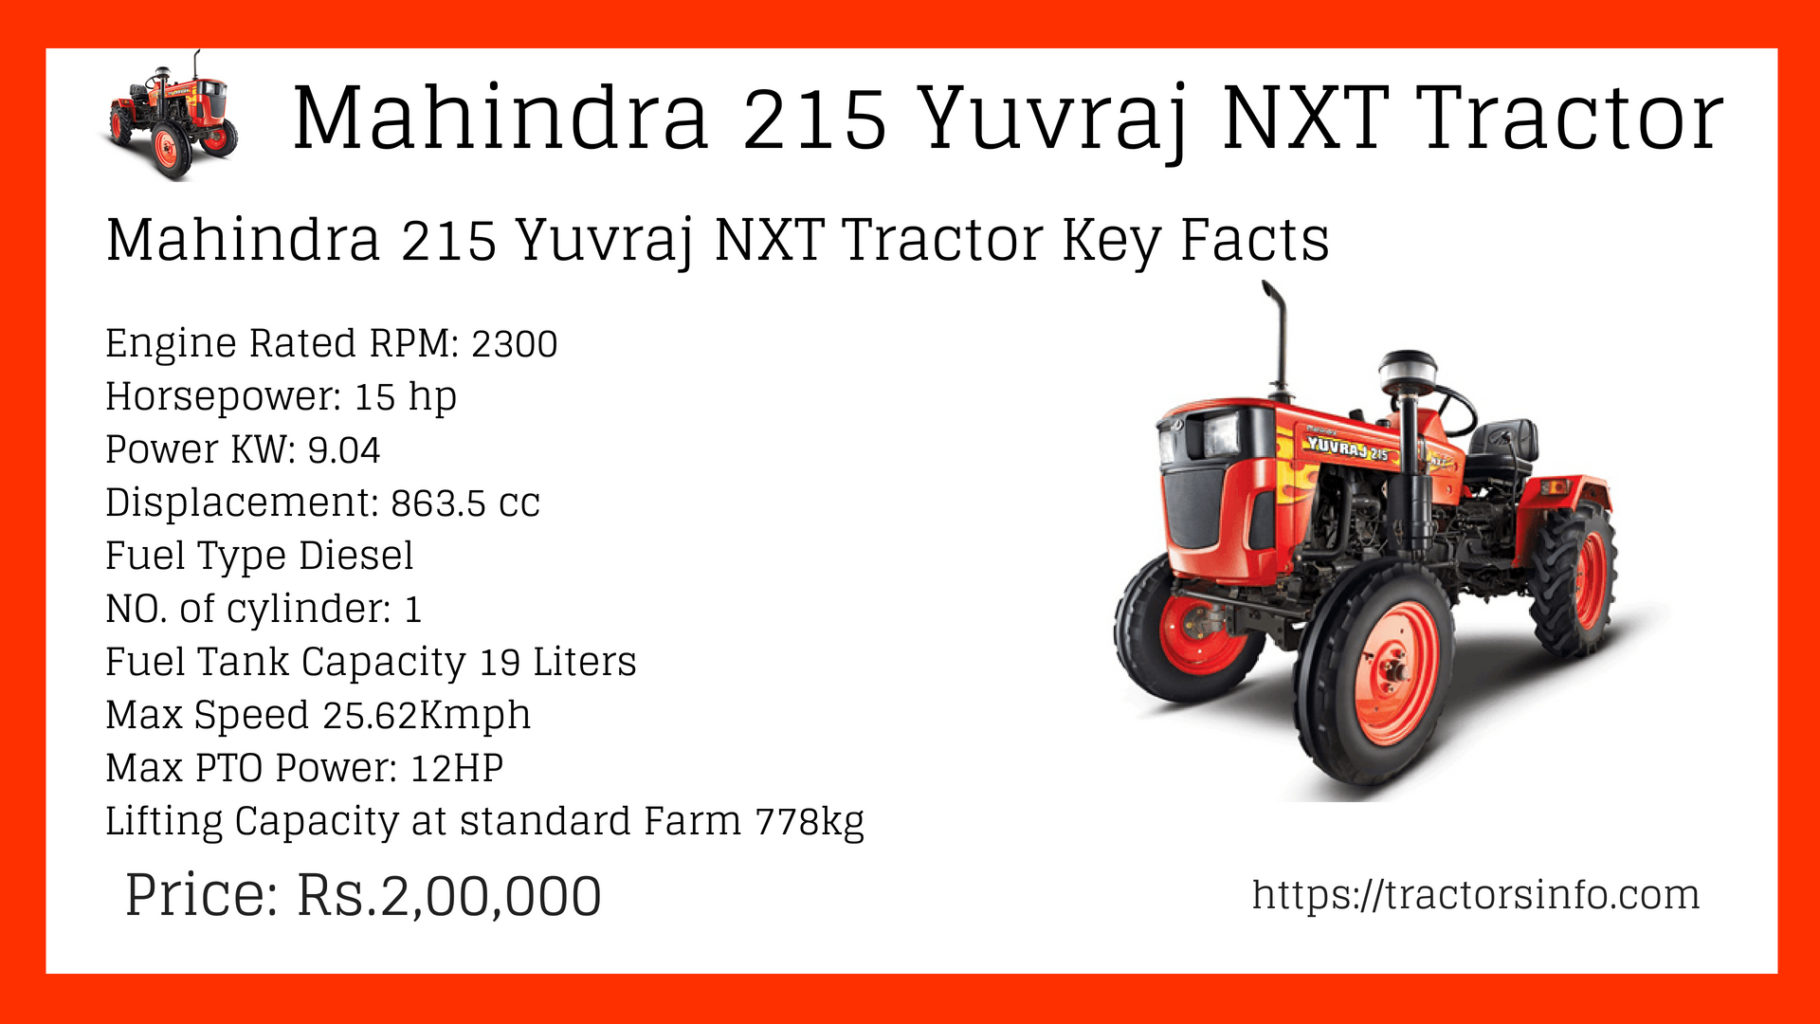 Mahindra 215 Yuvraj Nxt Tractor Price List Specs Features Wiring Diagram Free Picture